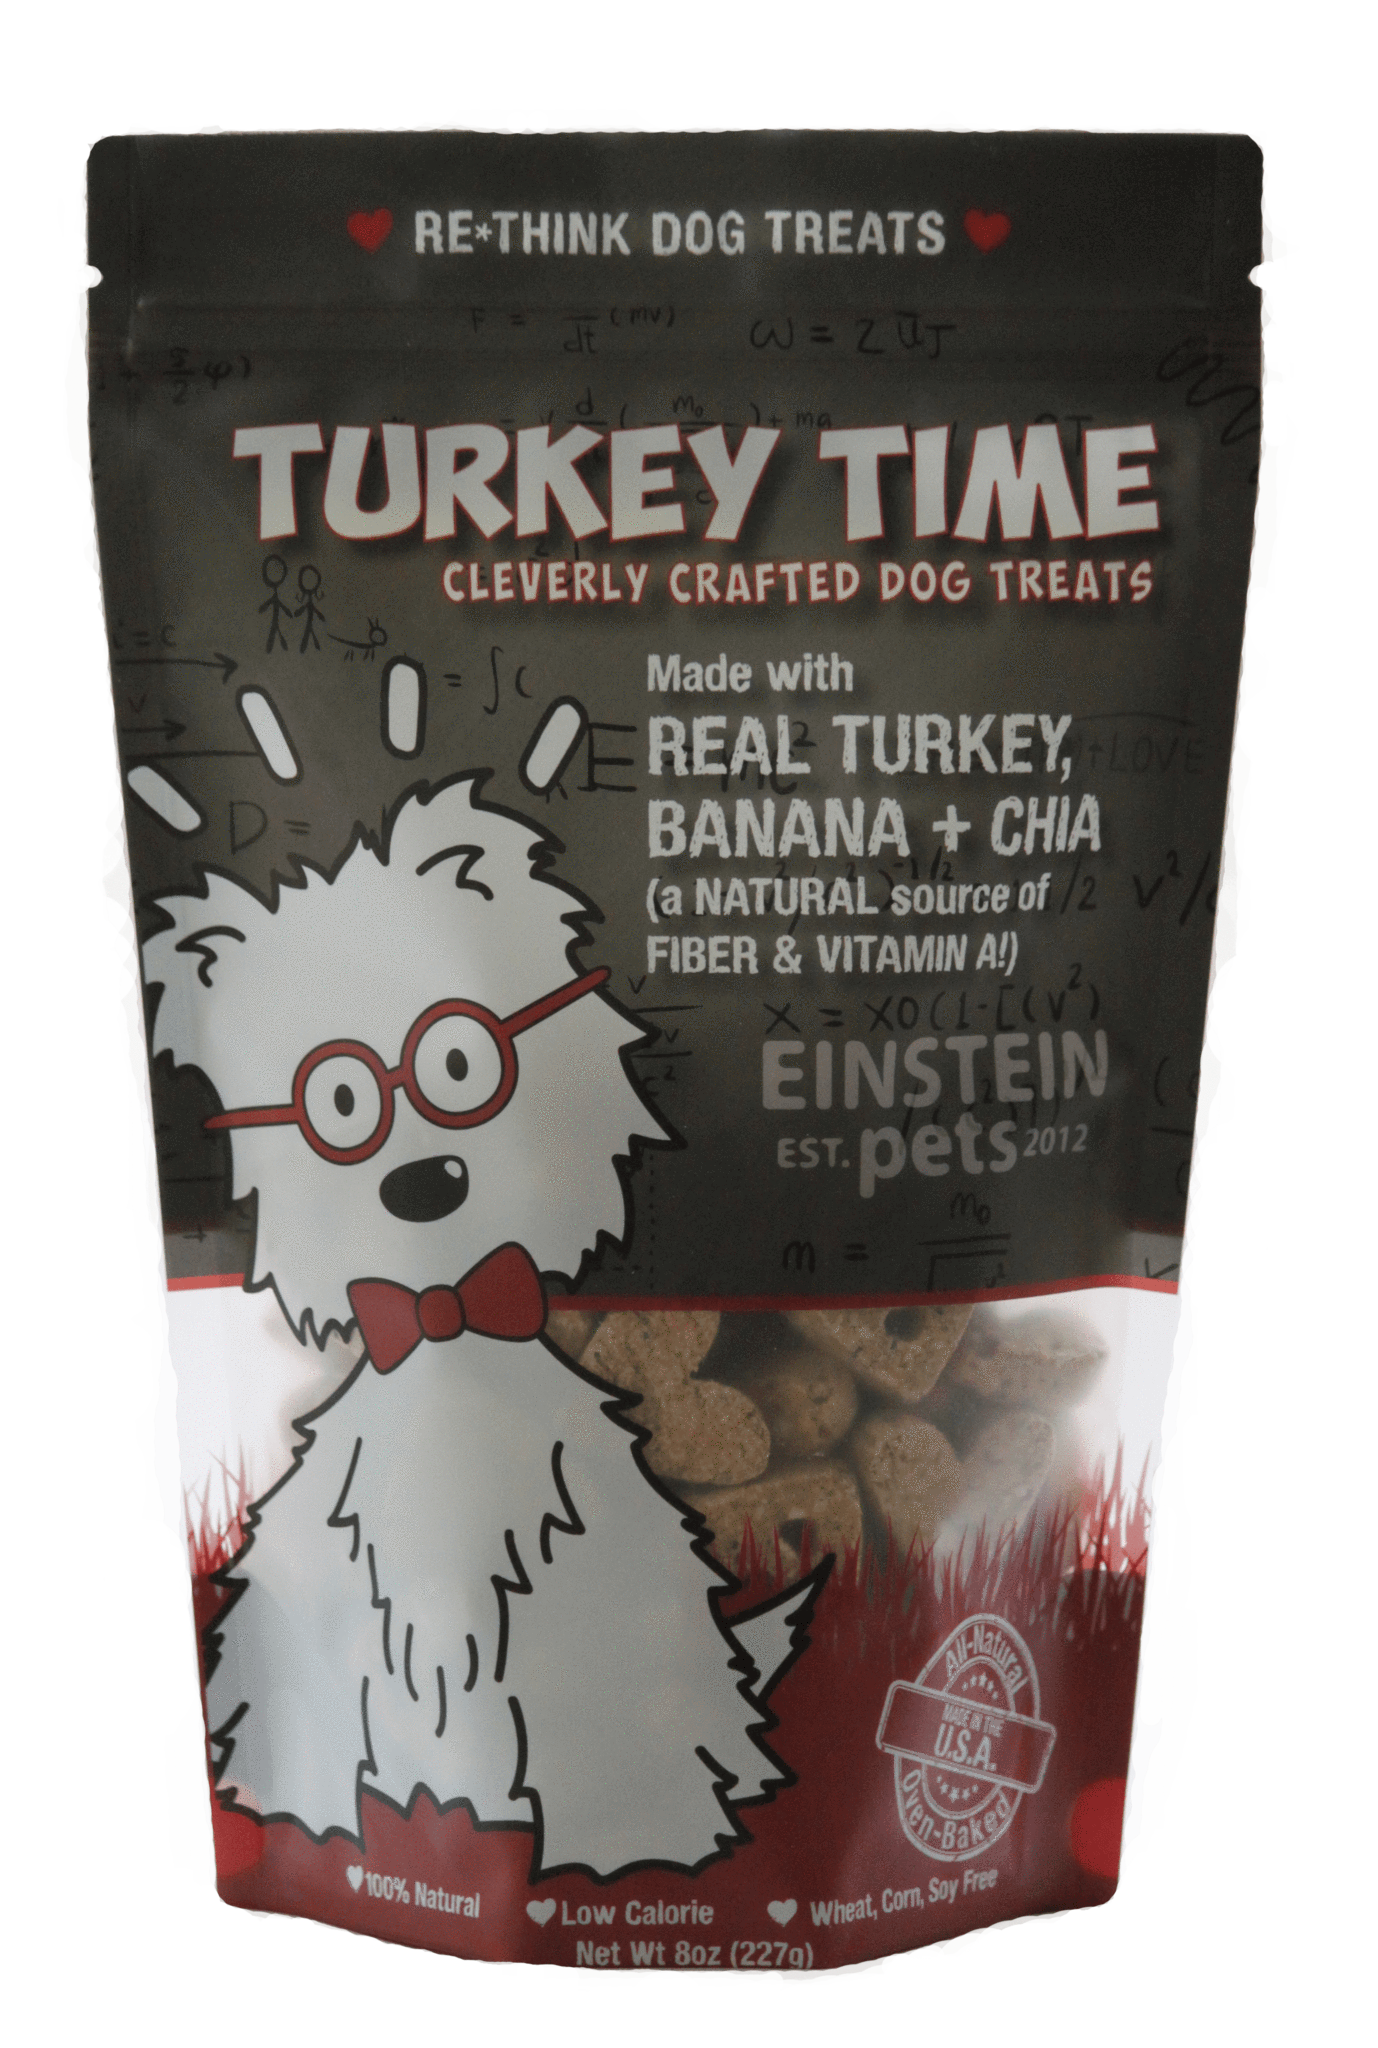 Einstein Pets Treats Turkey Time Image